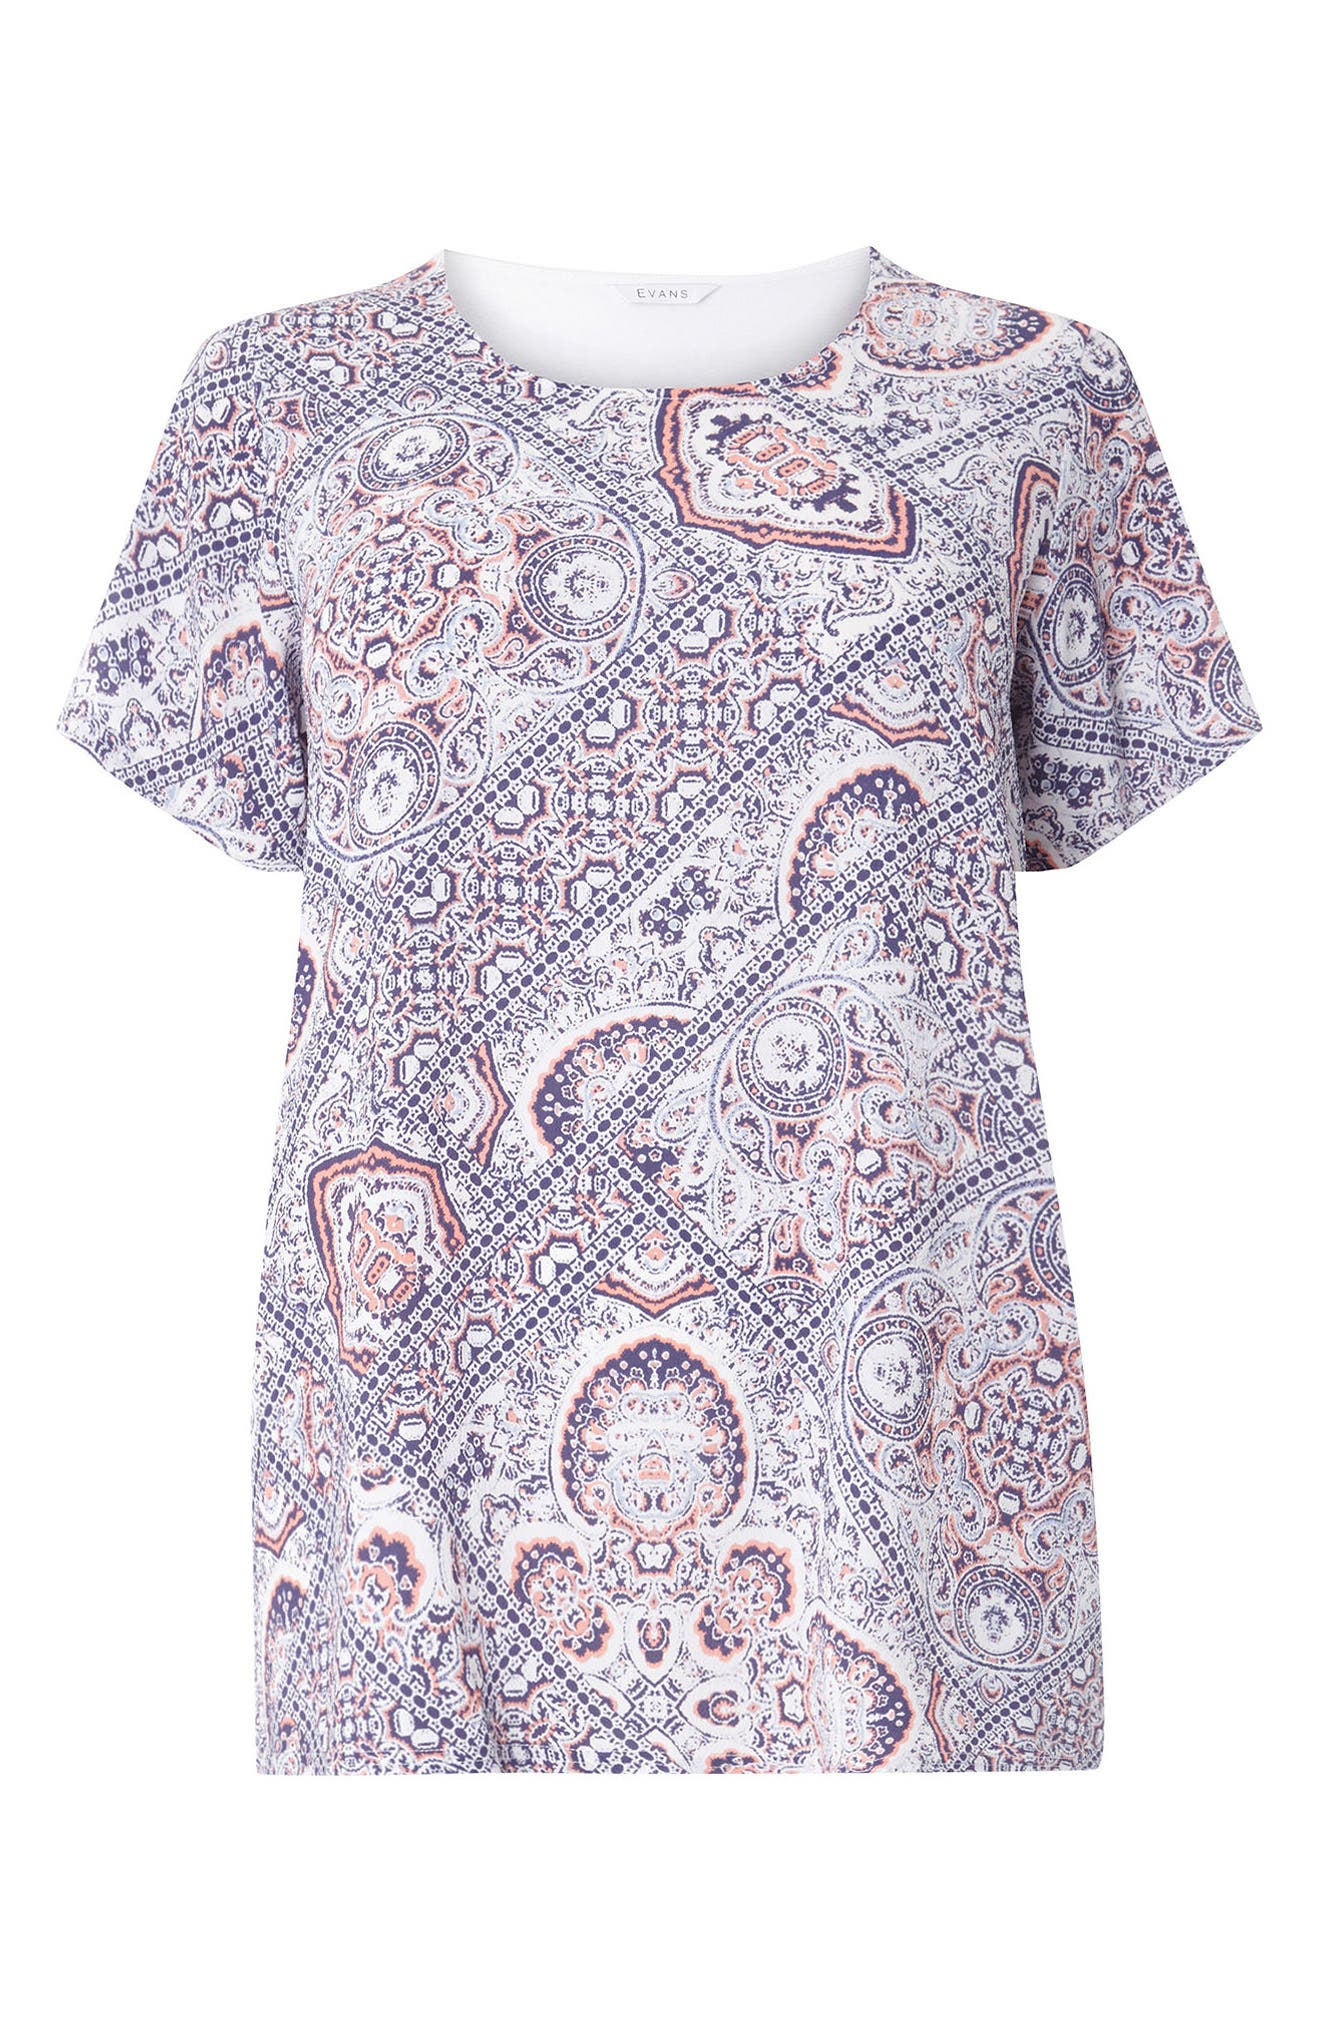 Evans Woven Front Cutabout Top (Plus Size)